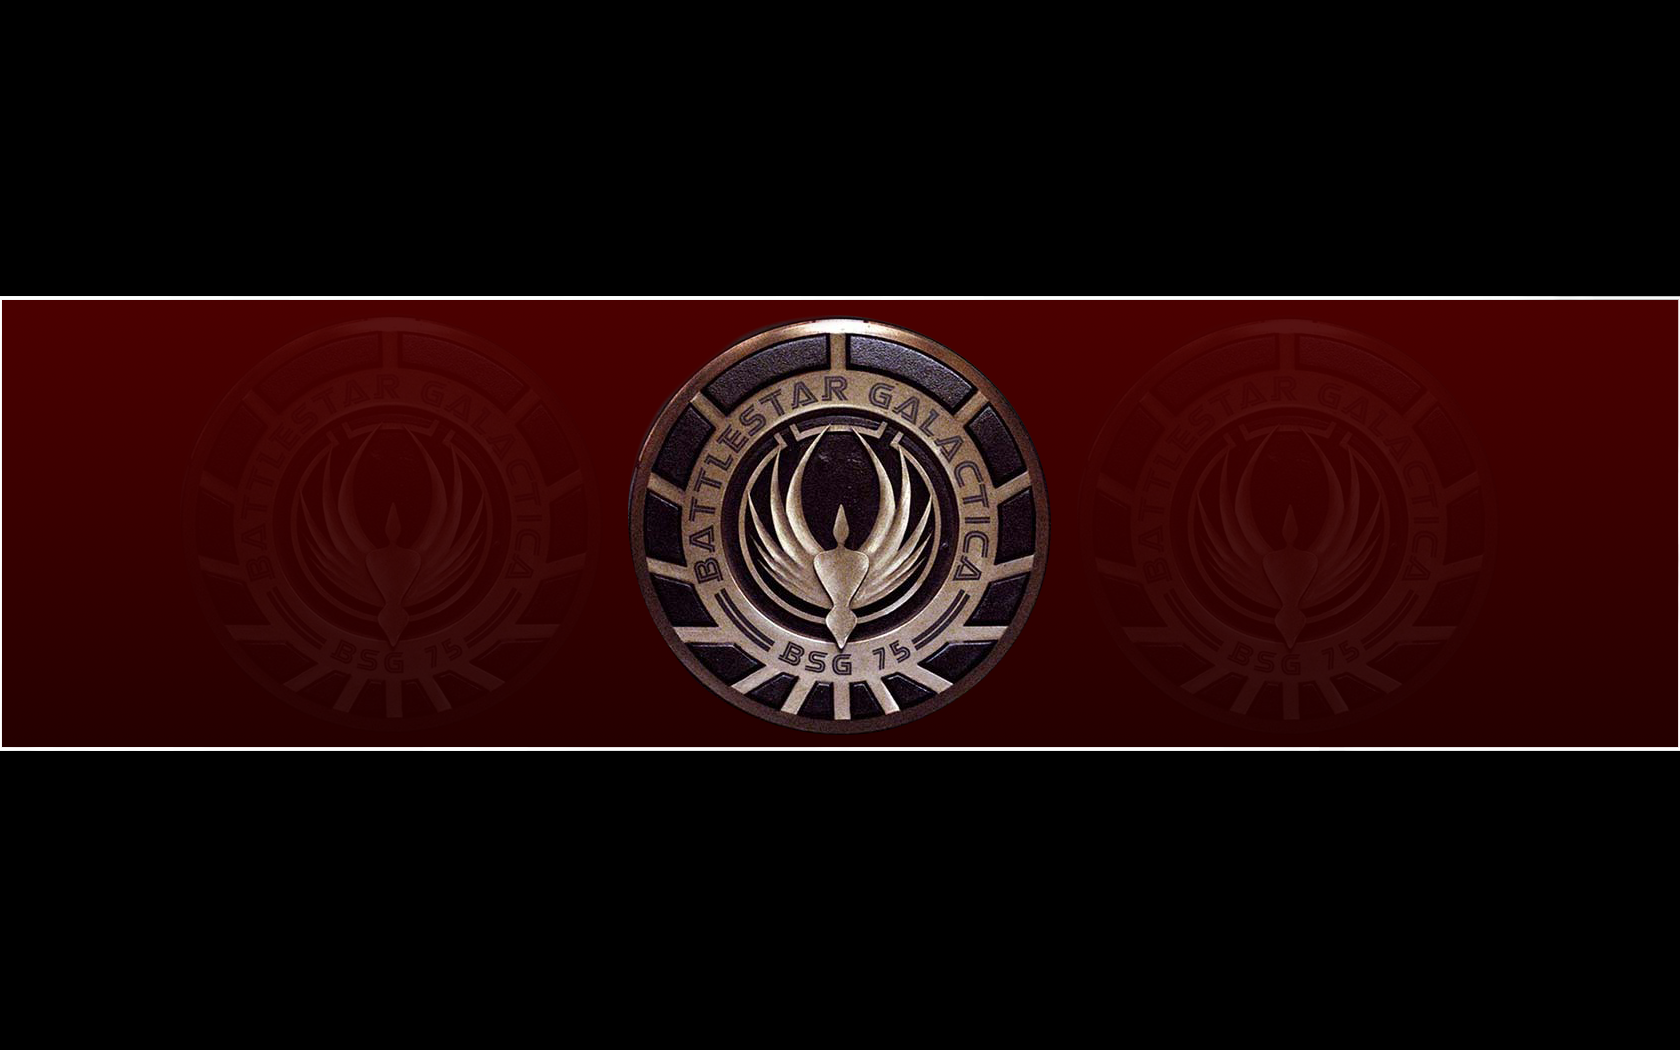 Battlestar galactica bsg desktop 1680x1050 wallpaper 188697